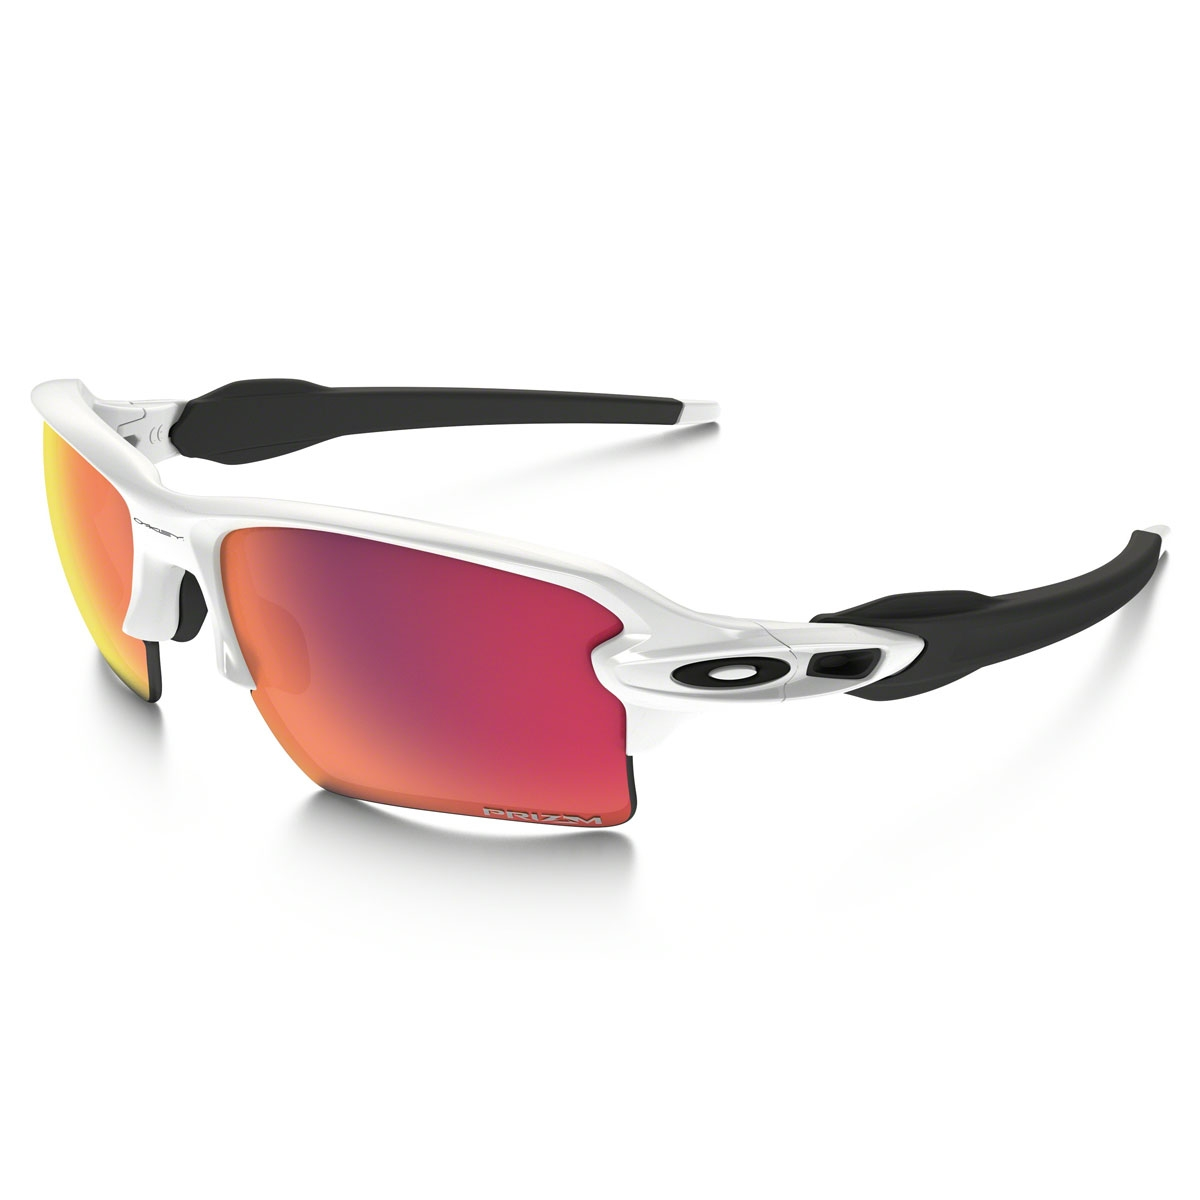 abd2a7df98a Image of Oakley Flak 2.0 XL Prizm Field Sunglasses - Polished White Frame  Prizm Field